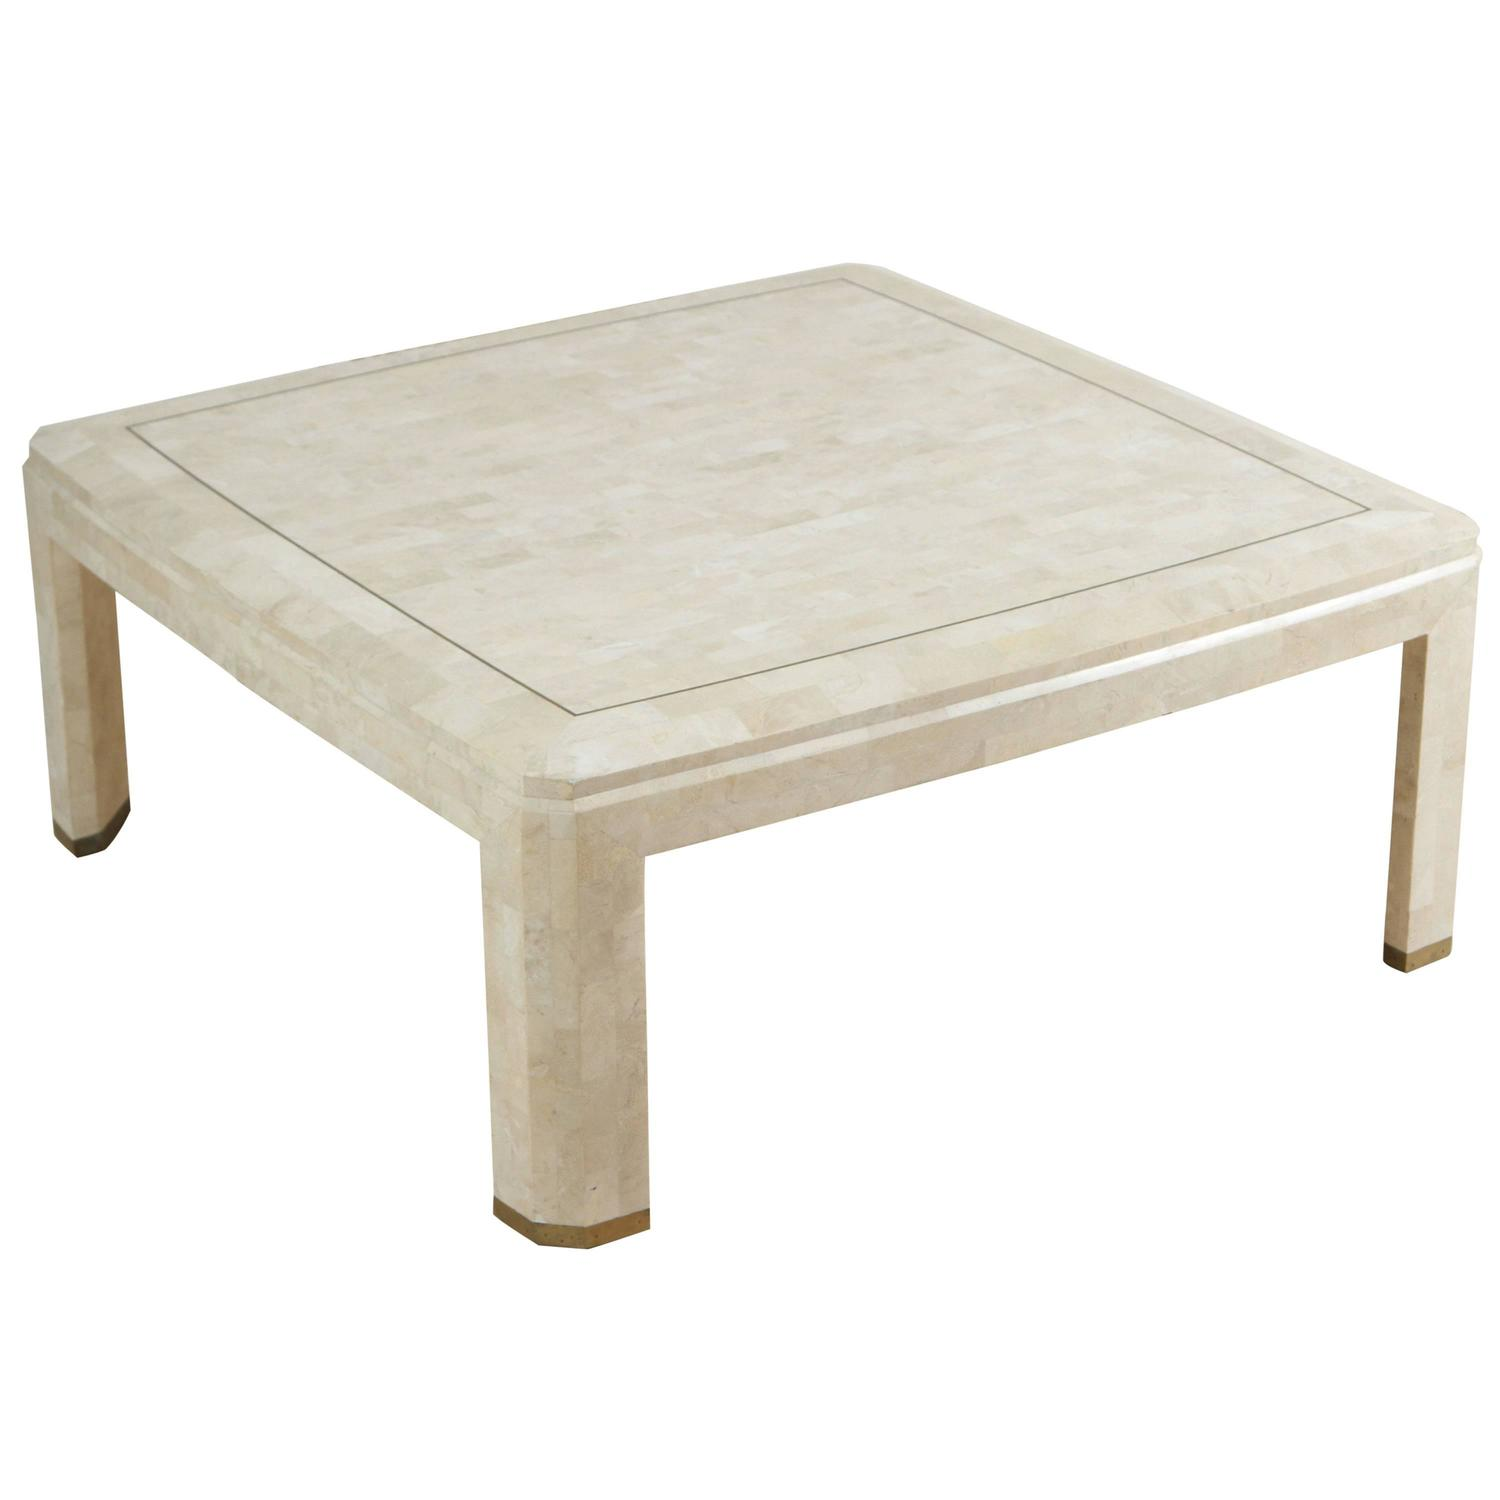 Maitland-Smith Mosaic Square Ivory Coffee Table - Maitland Smith Tables - 139 For Sale At 1stdibs